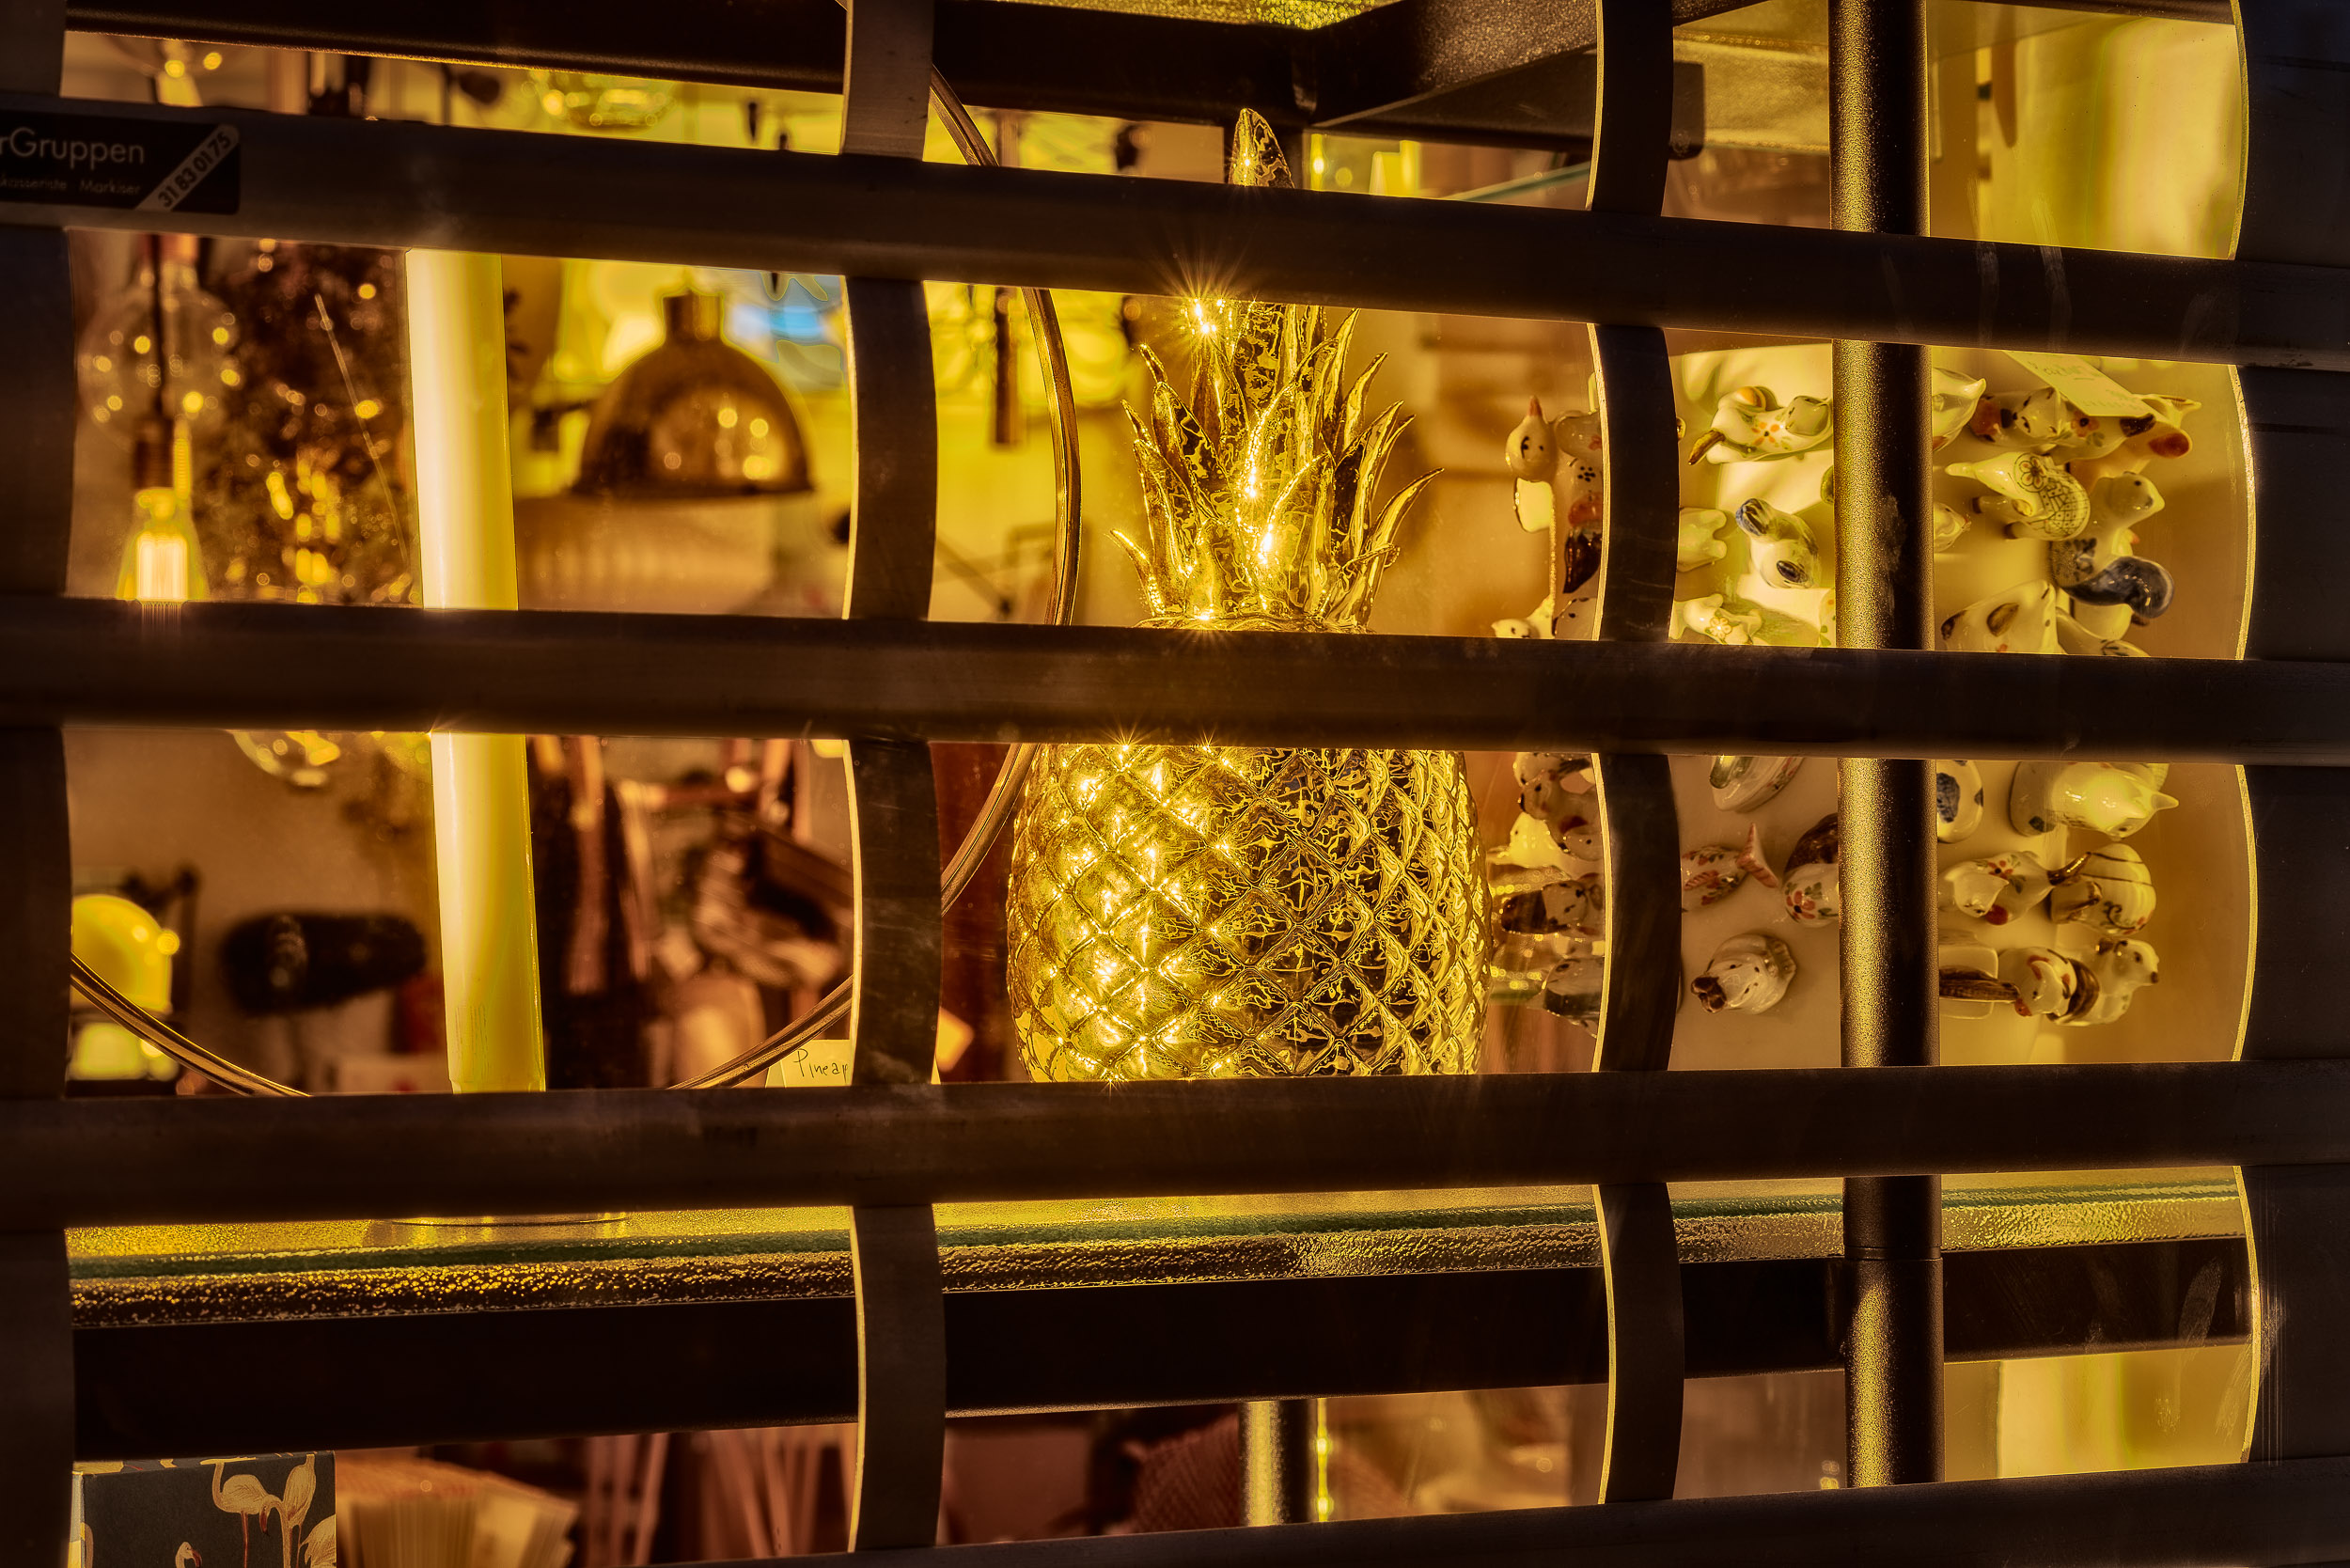 Night time is the right time for  atmospheric still lifes , such as this  golden image  photographed through a shop window in  Copenhagen, Denmark .